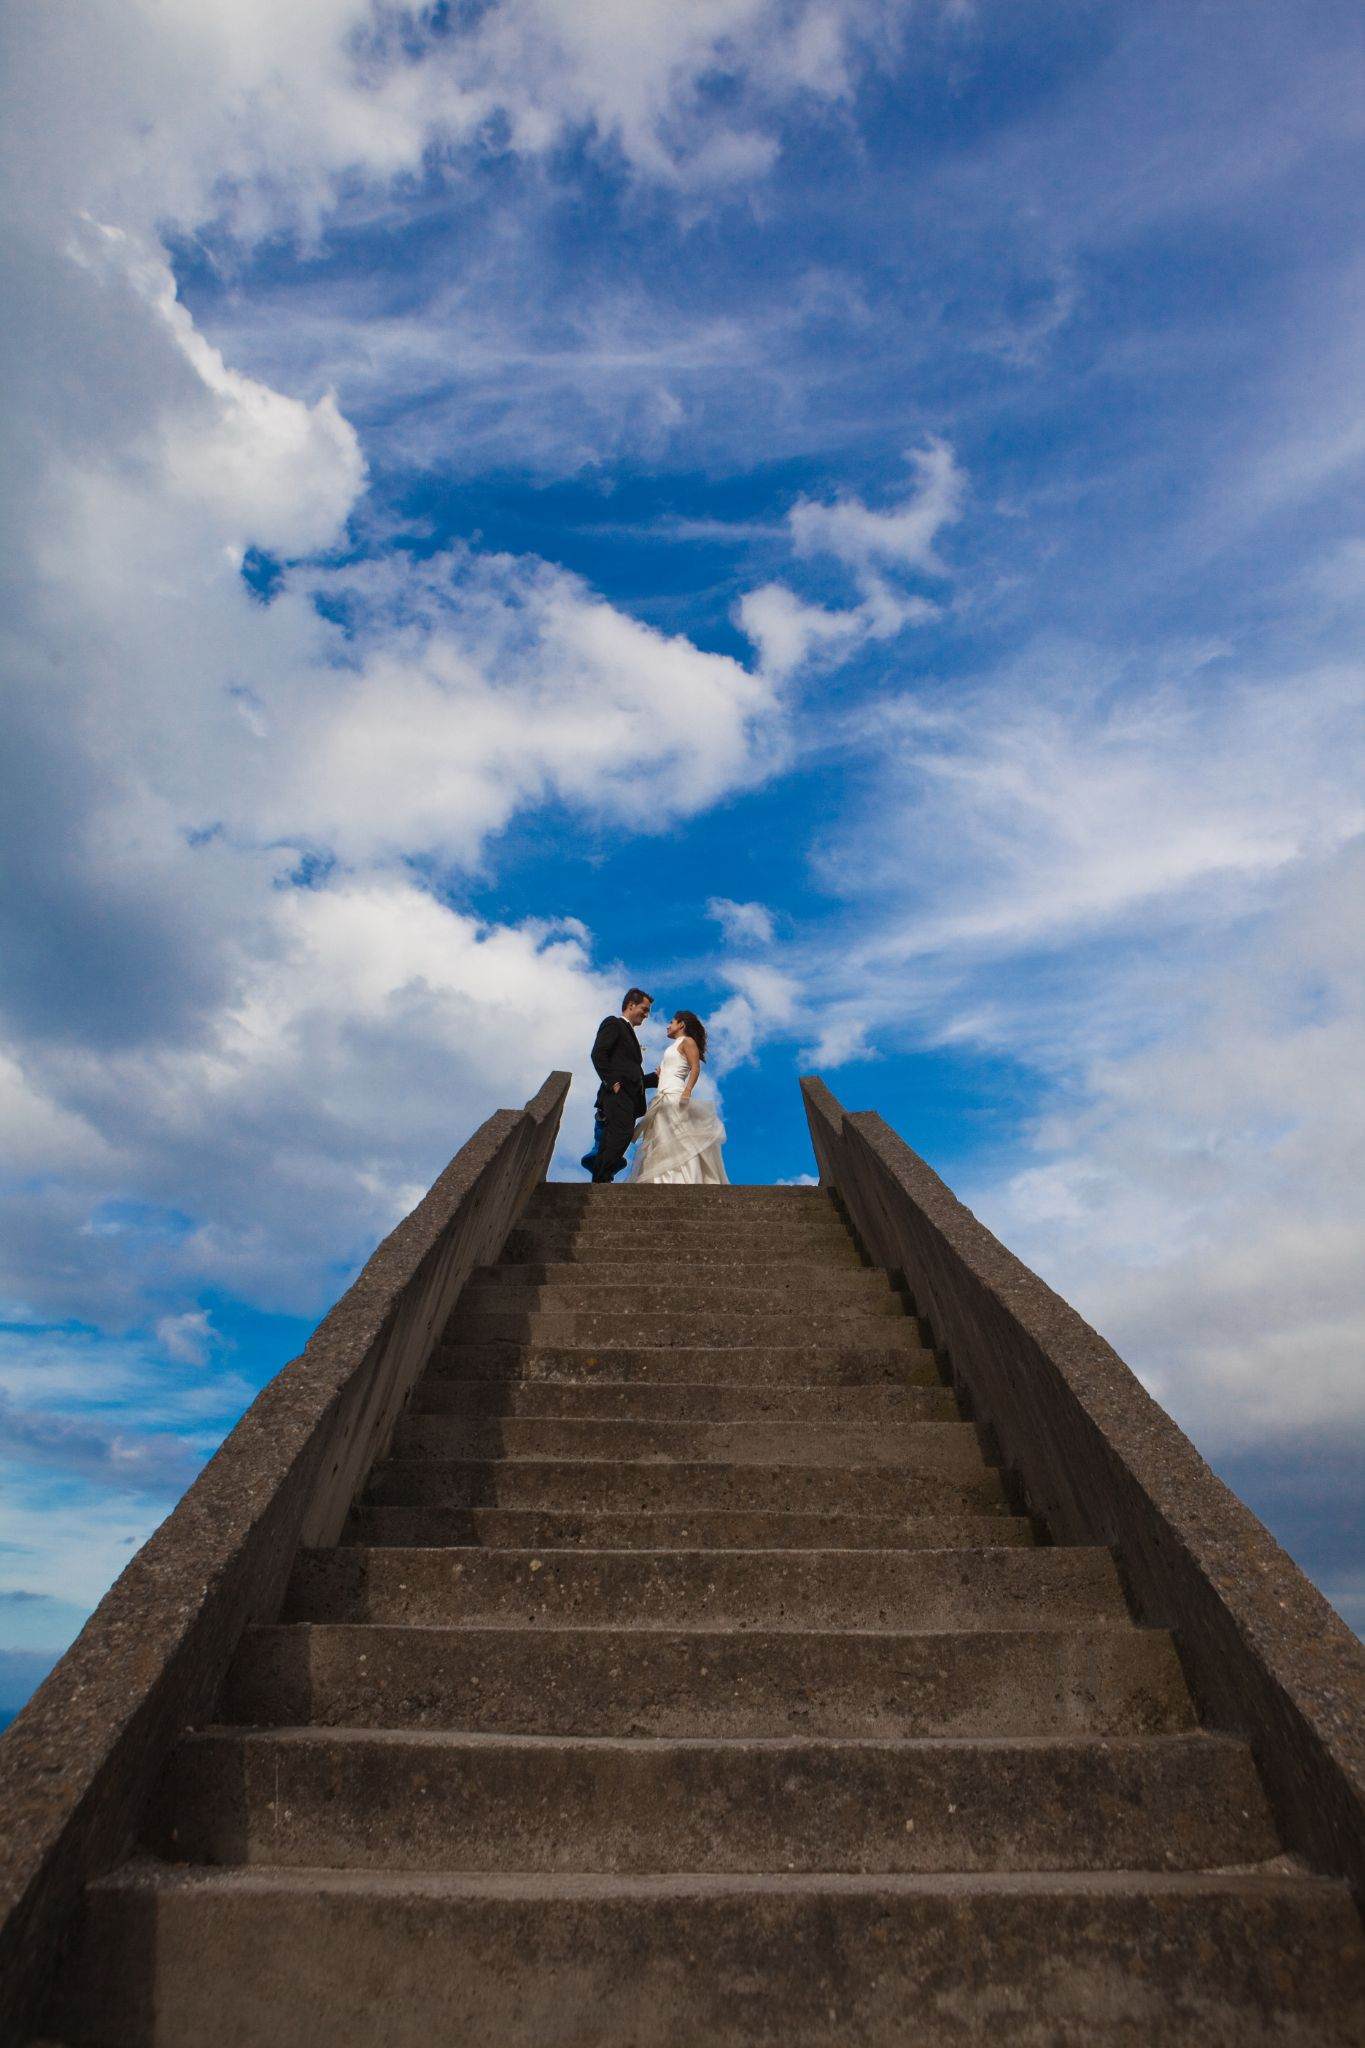 Stairway to heaven by ivanvazquezphotographer